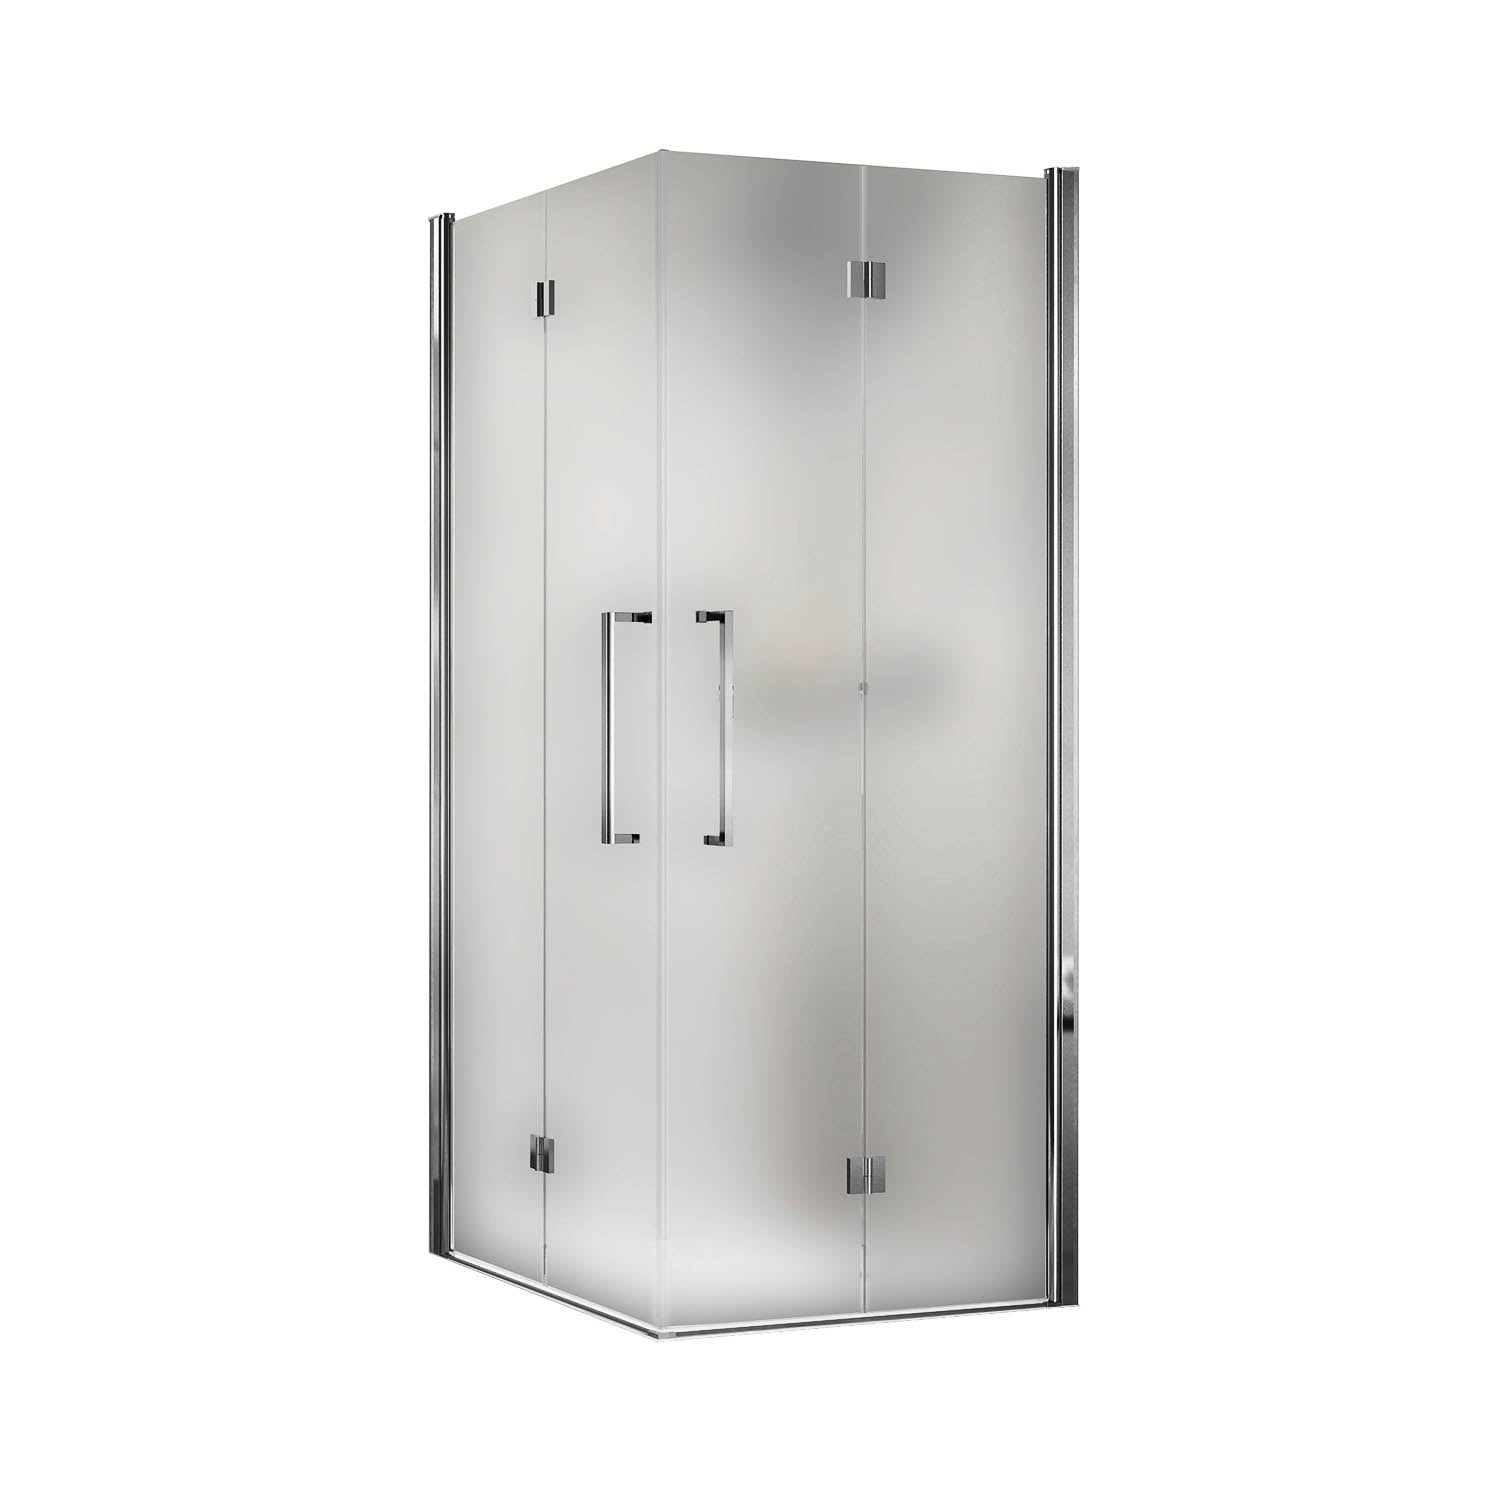 990-1010mm Bliss Bi-folding Screen Frosted Glass with a chrome finish on a white background